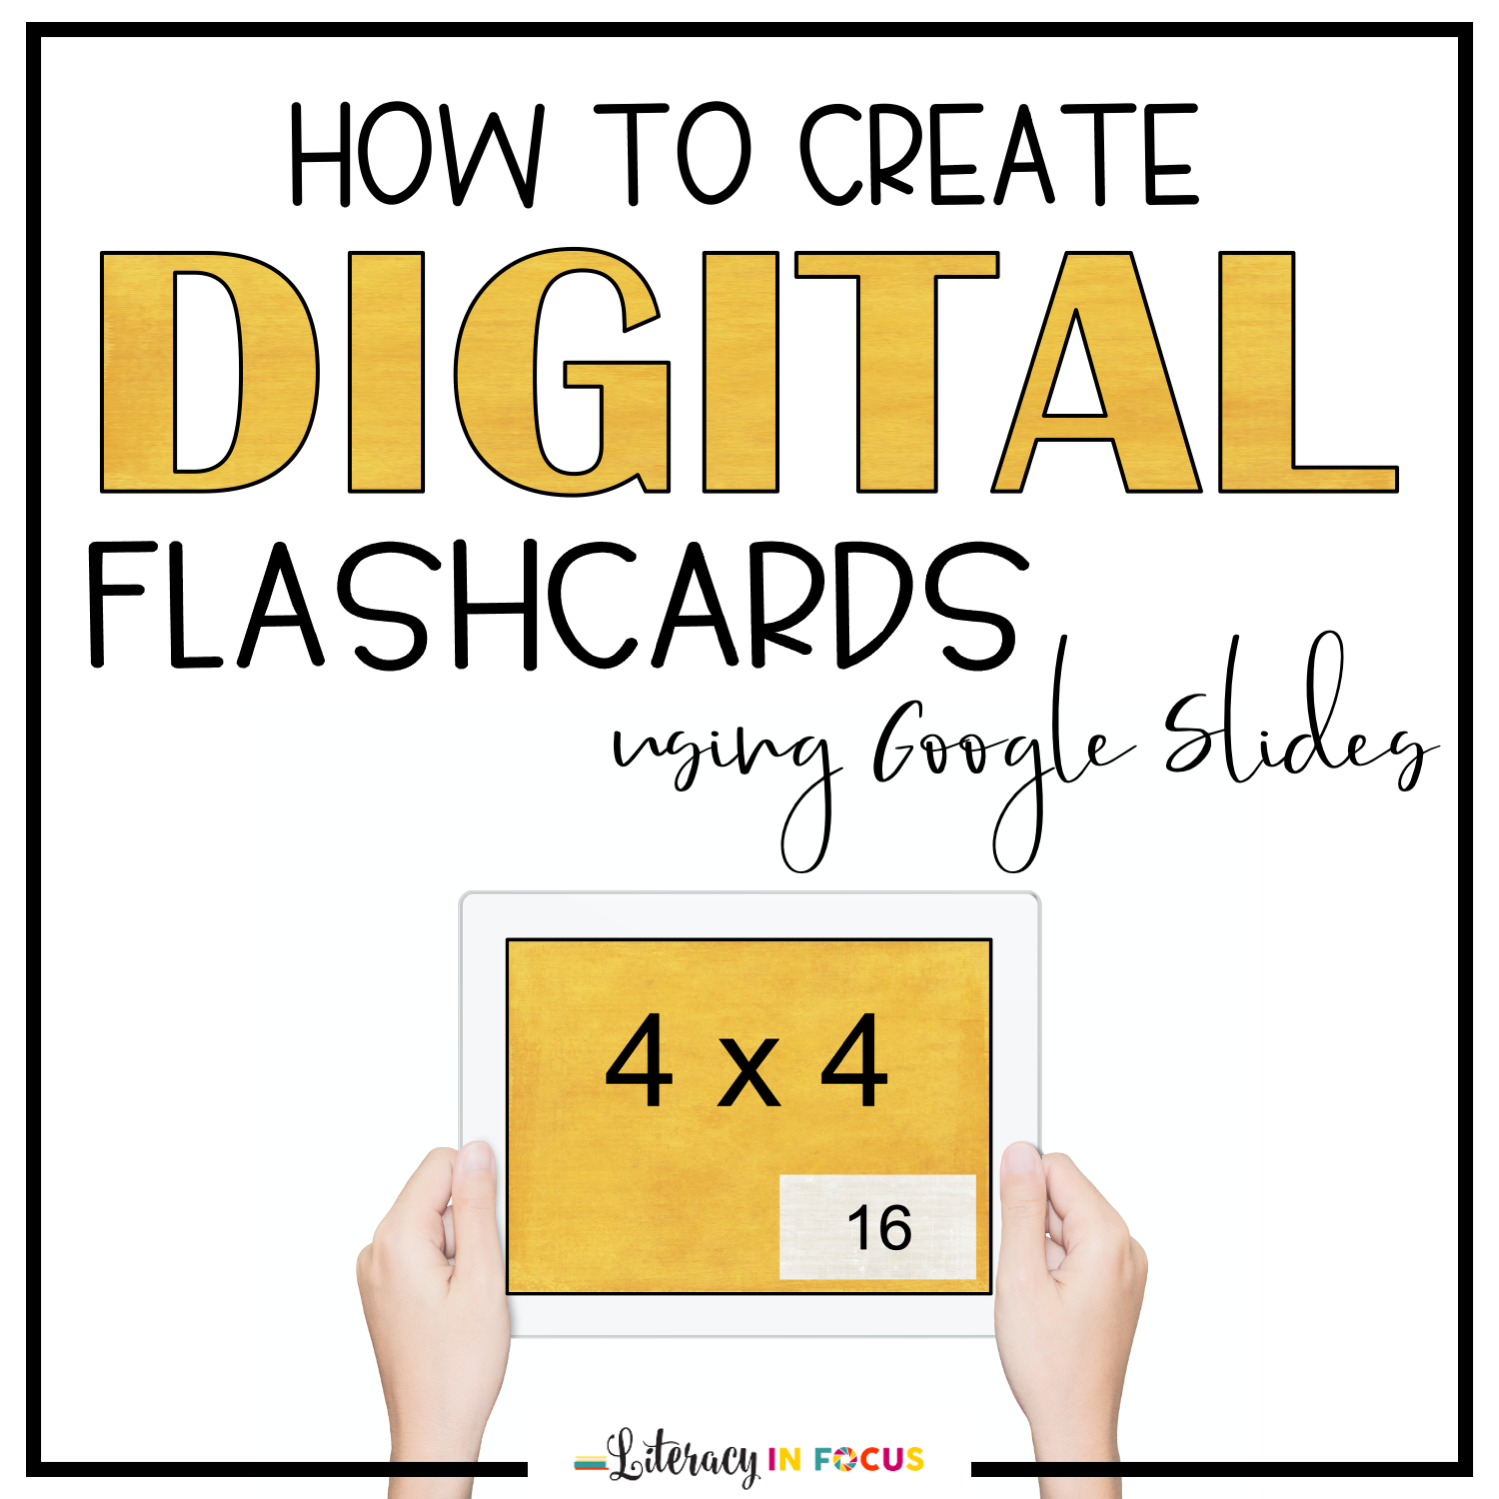 Digital Flashcards Steps